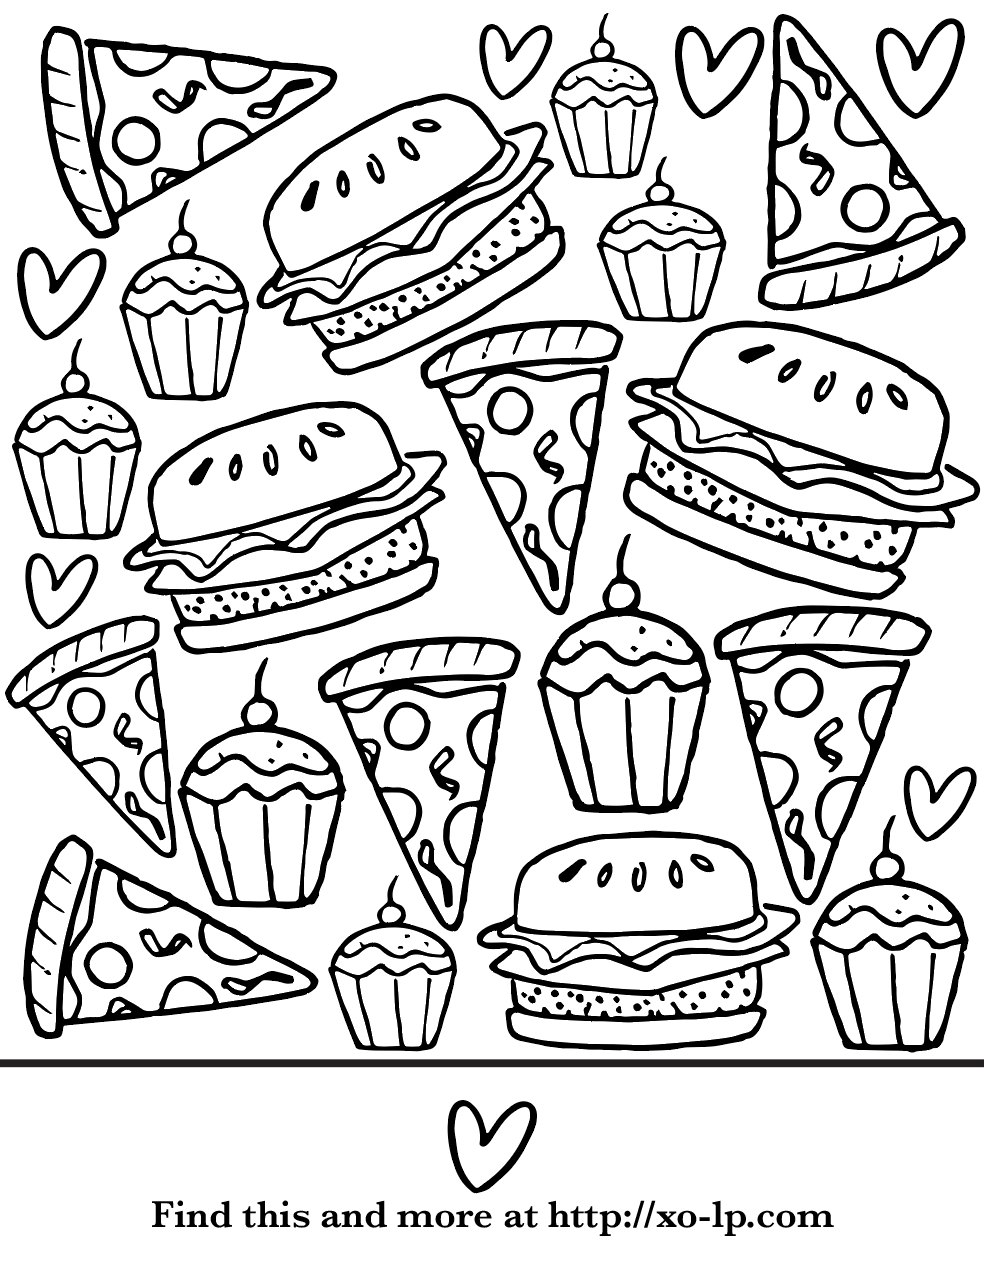 Free Easy To Print Food Coloring Pages Food Coloring Pages Food Print Coloring Pictures